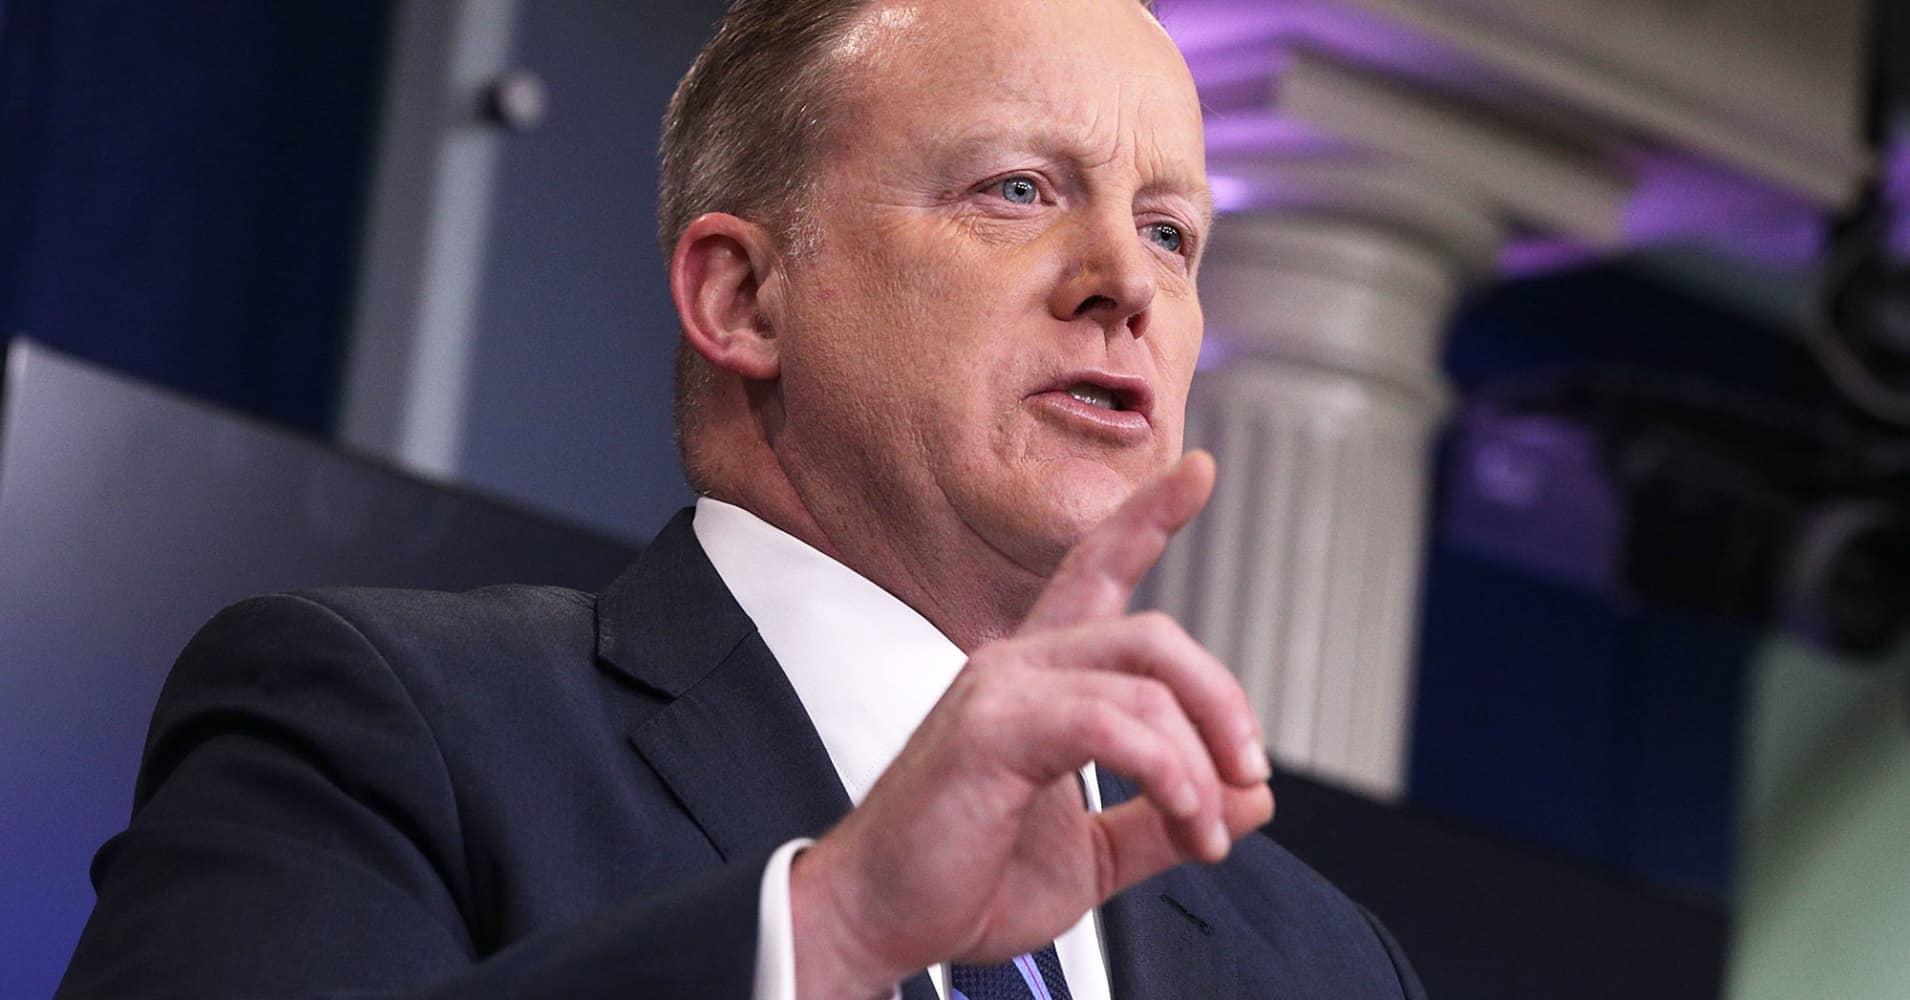 Sean Spicer thinks Nancy Pelosi's win is a win for Trump